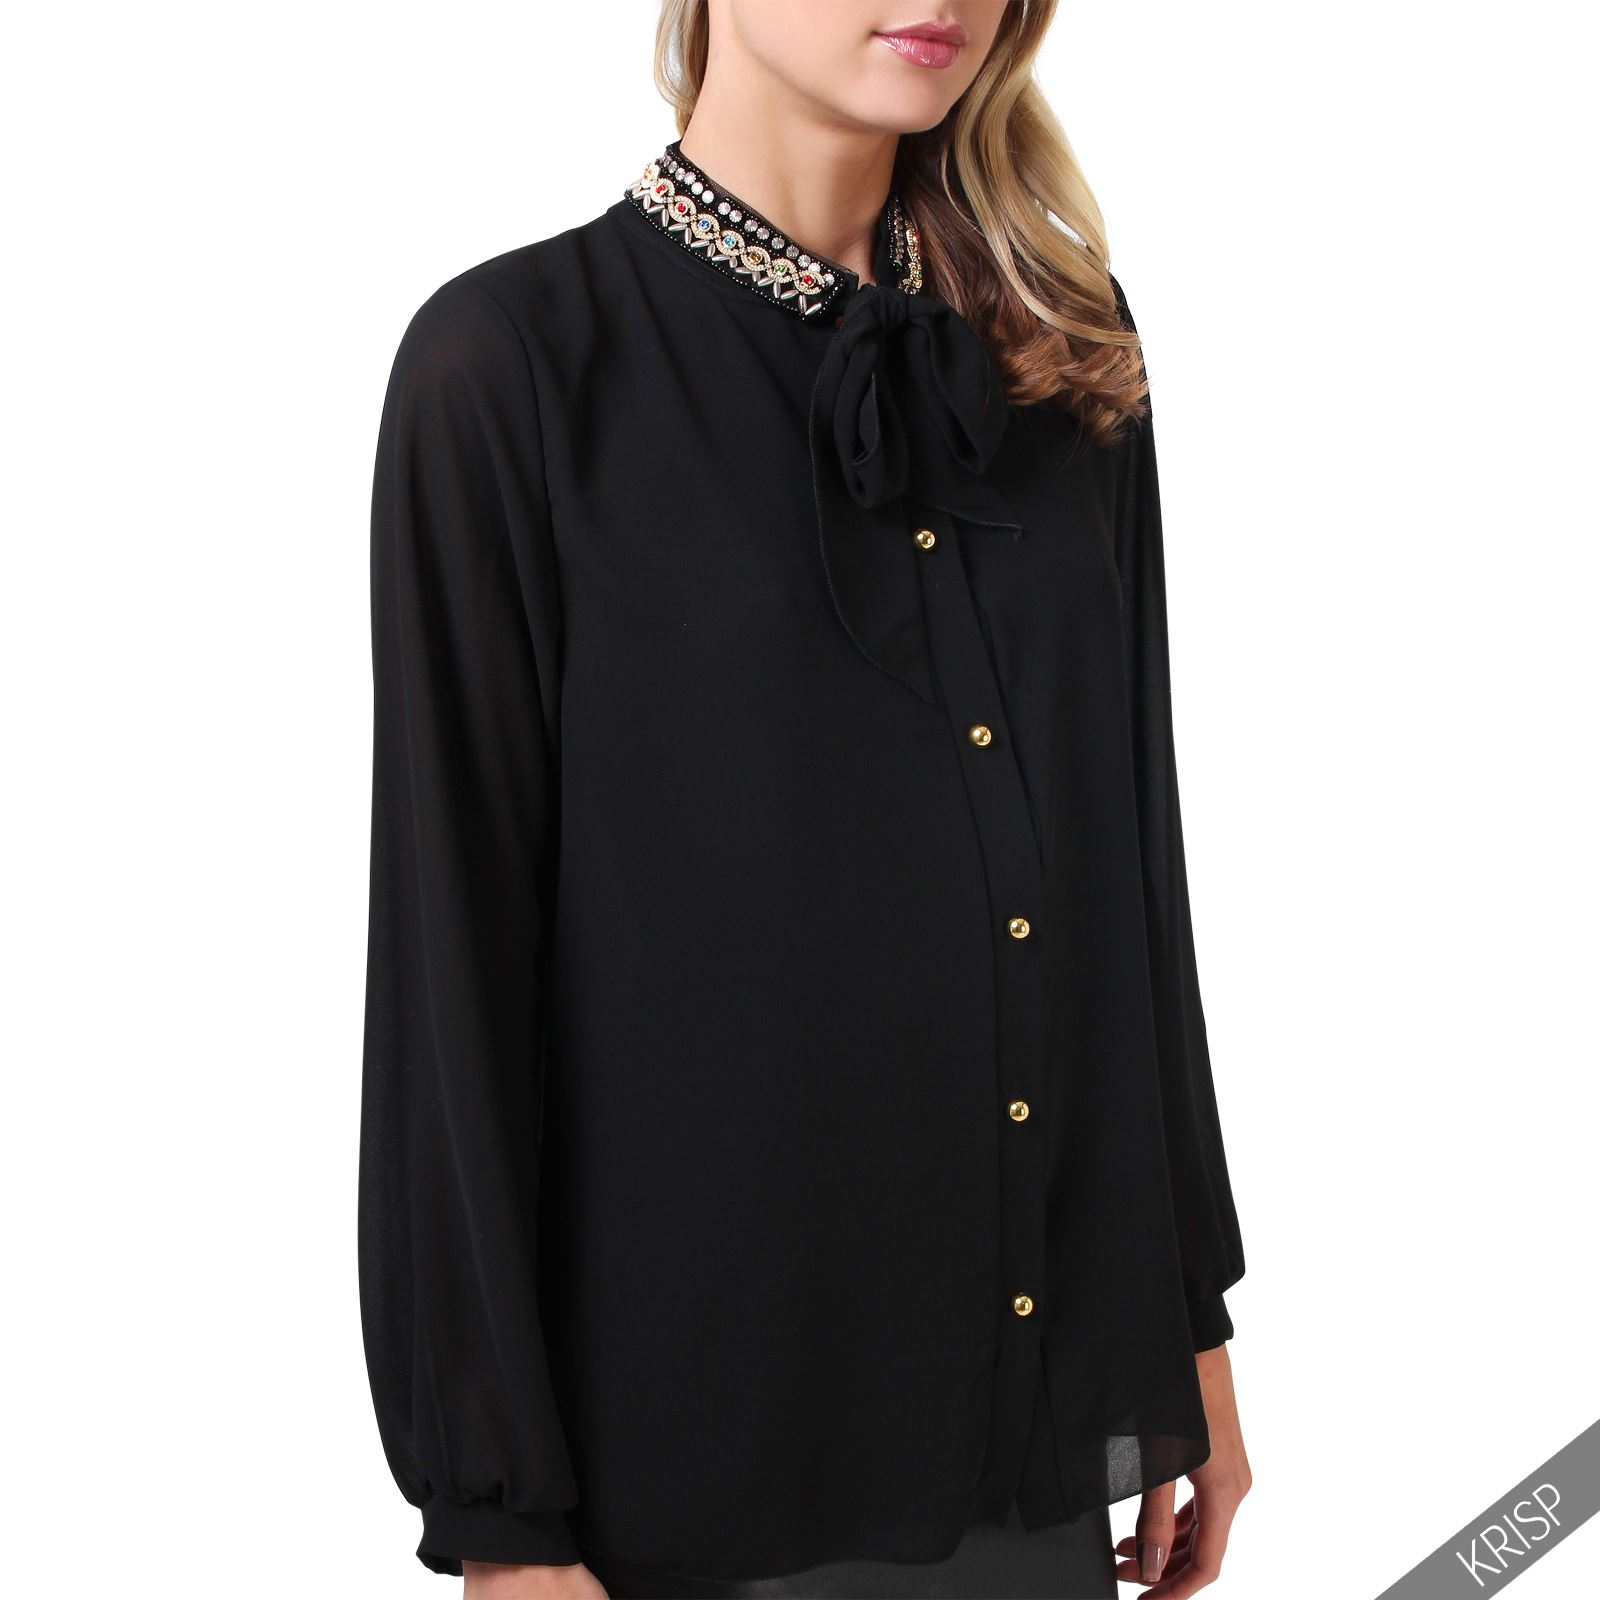 damen elegante chiffon bluse mit schleife schwarz shirt. Black Bedroom Furniture Sets. Home Design Ideas